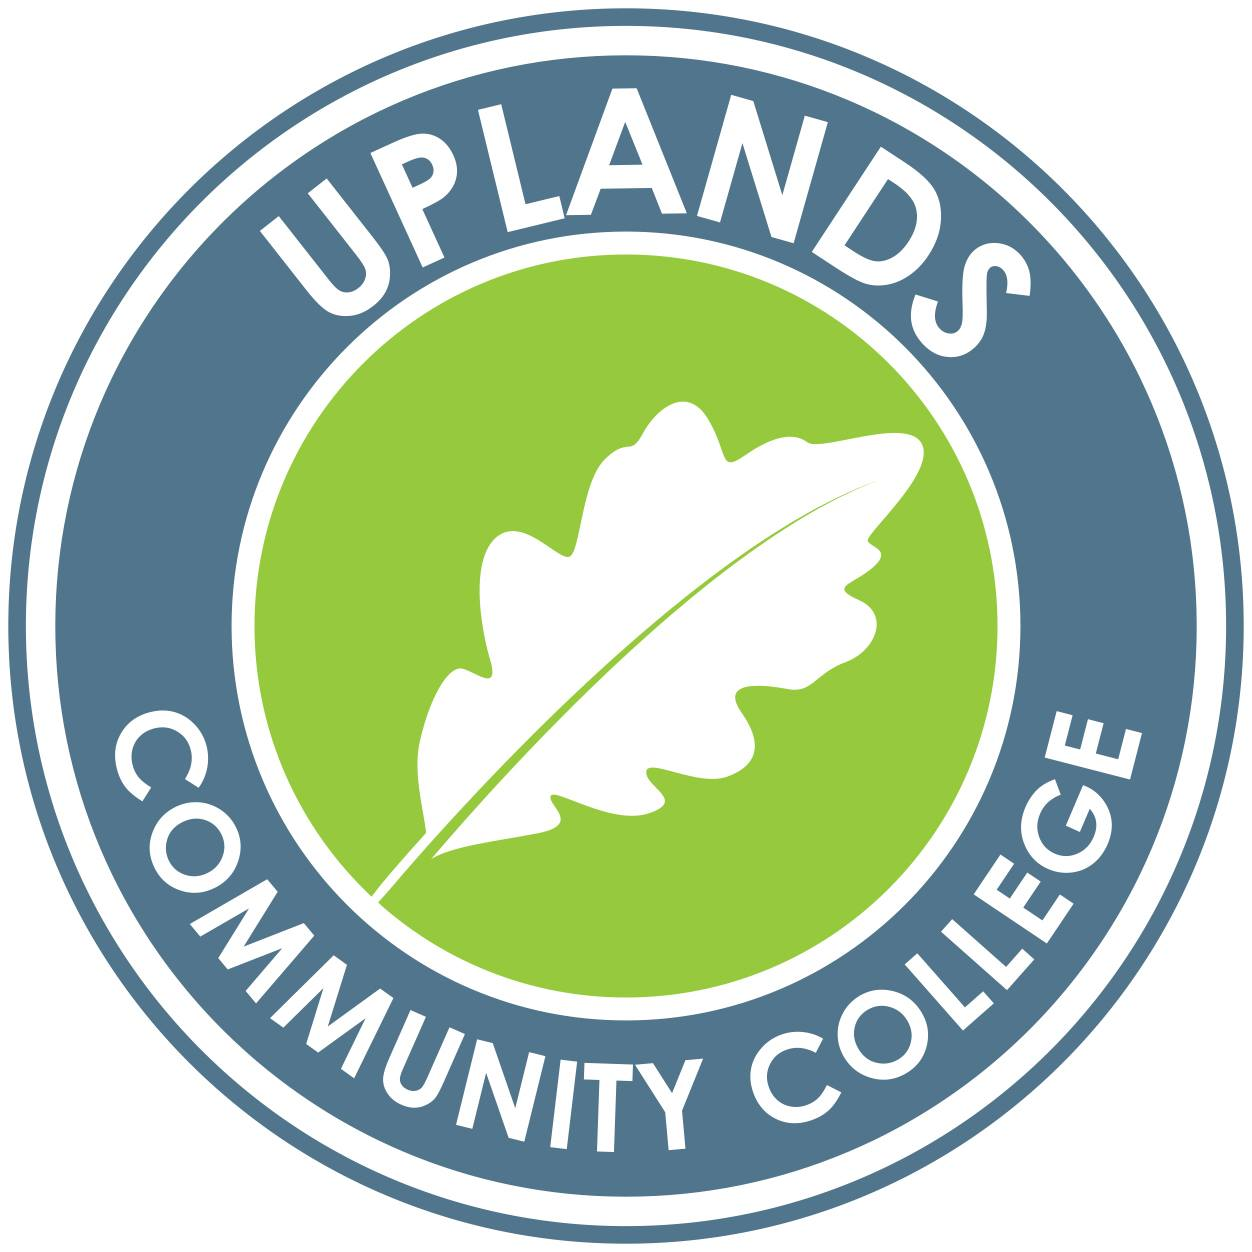 Uplands Community College校徽